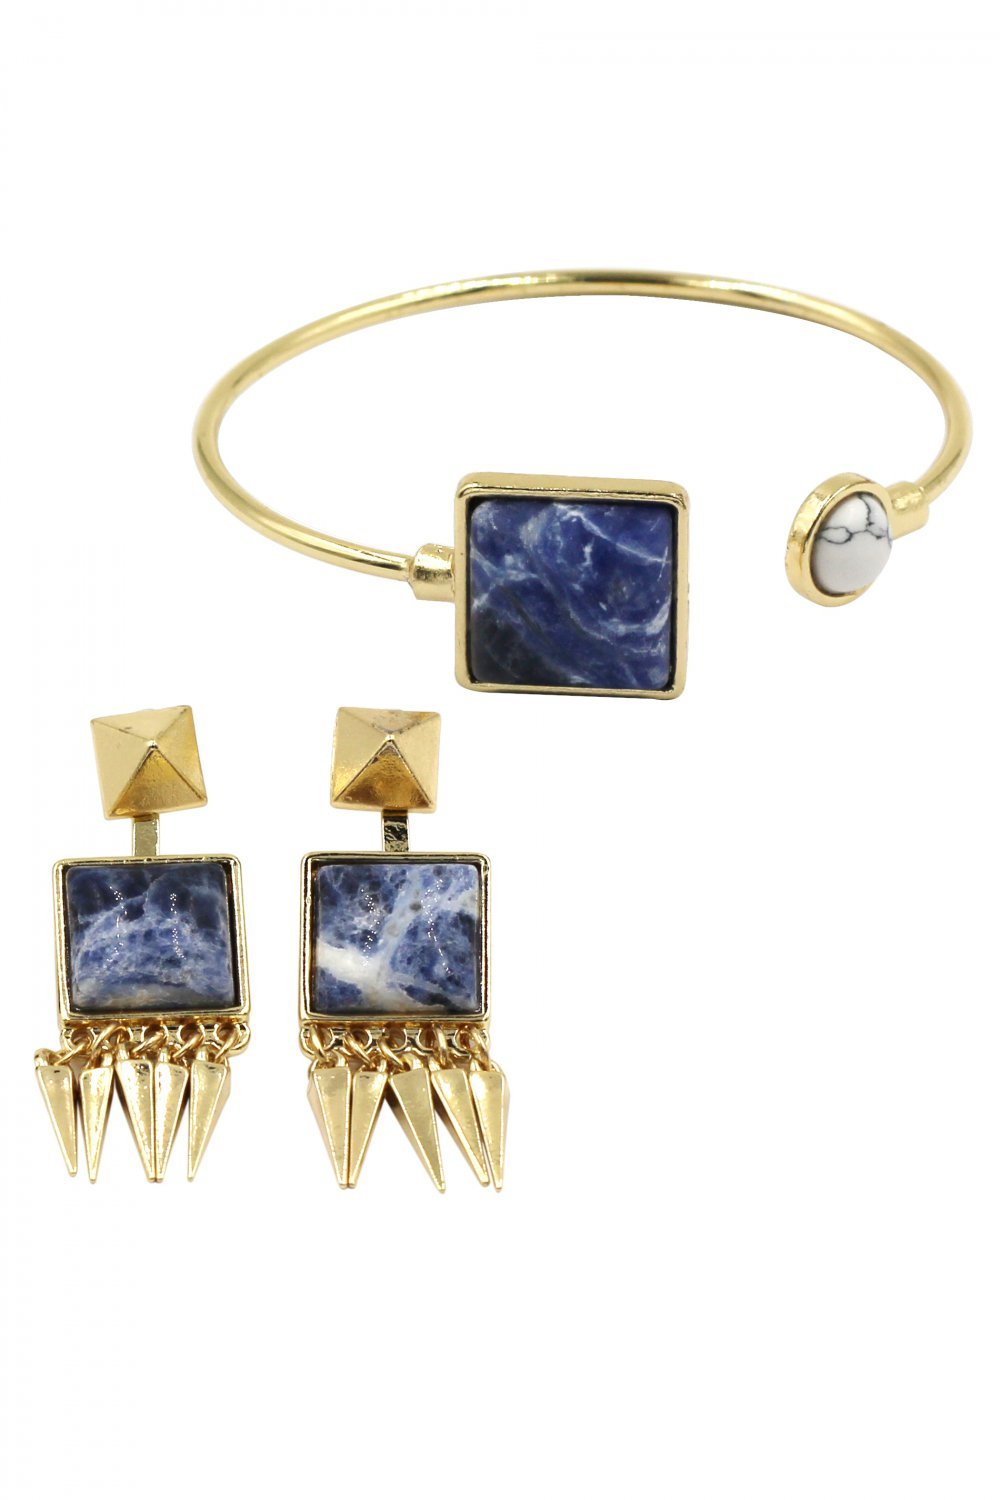 Fashion blue square white round golden bracelet earrings set